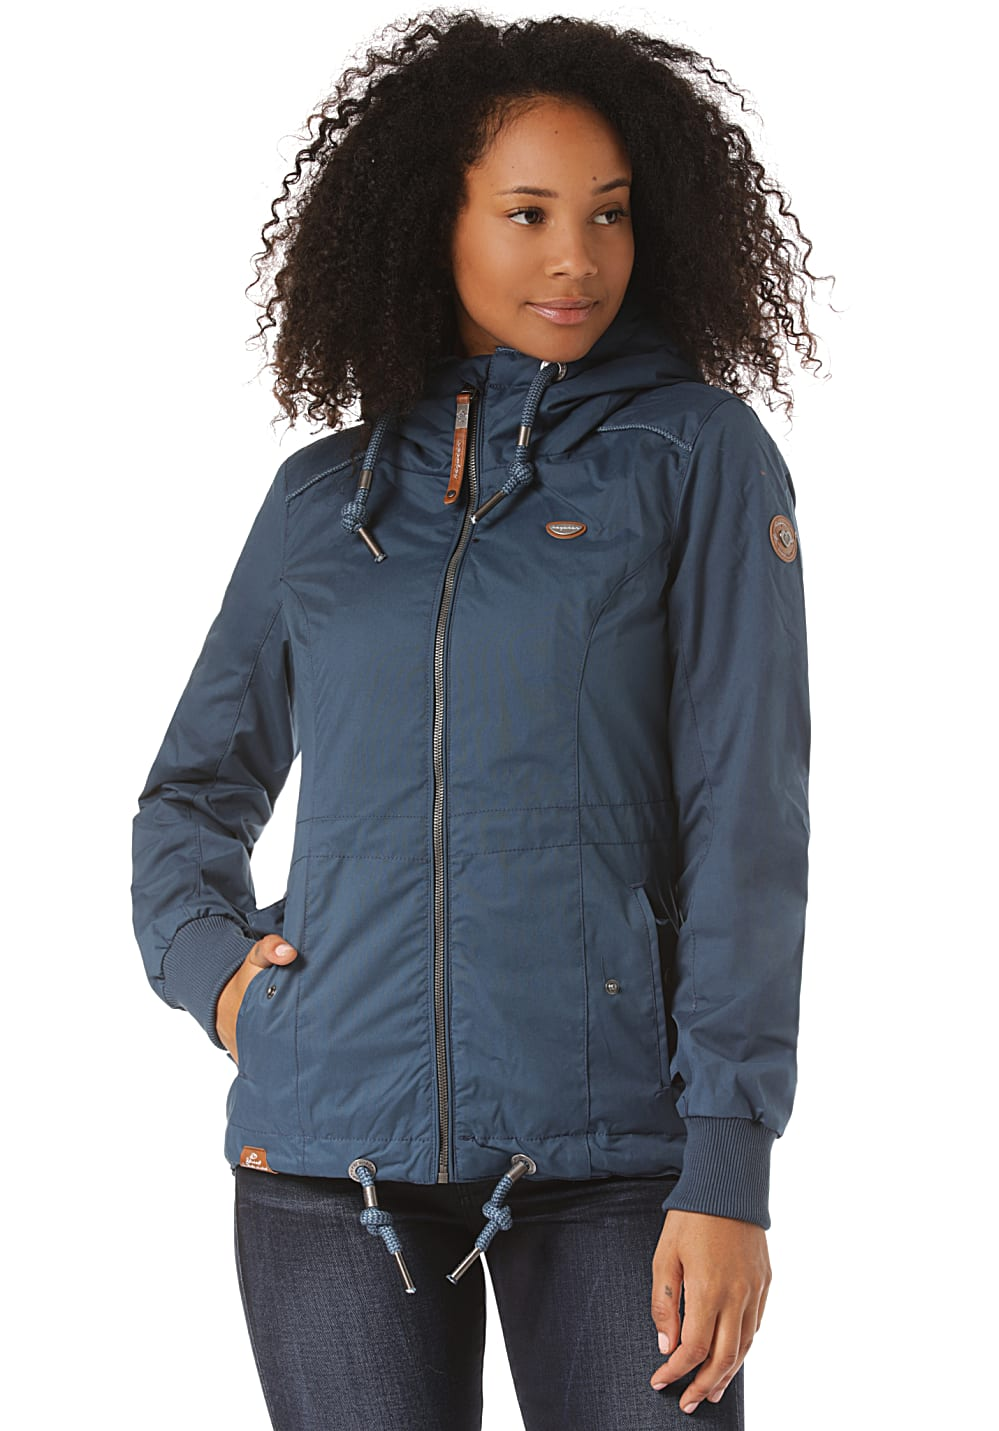 Jacken - ragwear Danka Jacke für Damen Blau  - Onlineshop Planet Sports